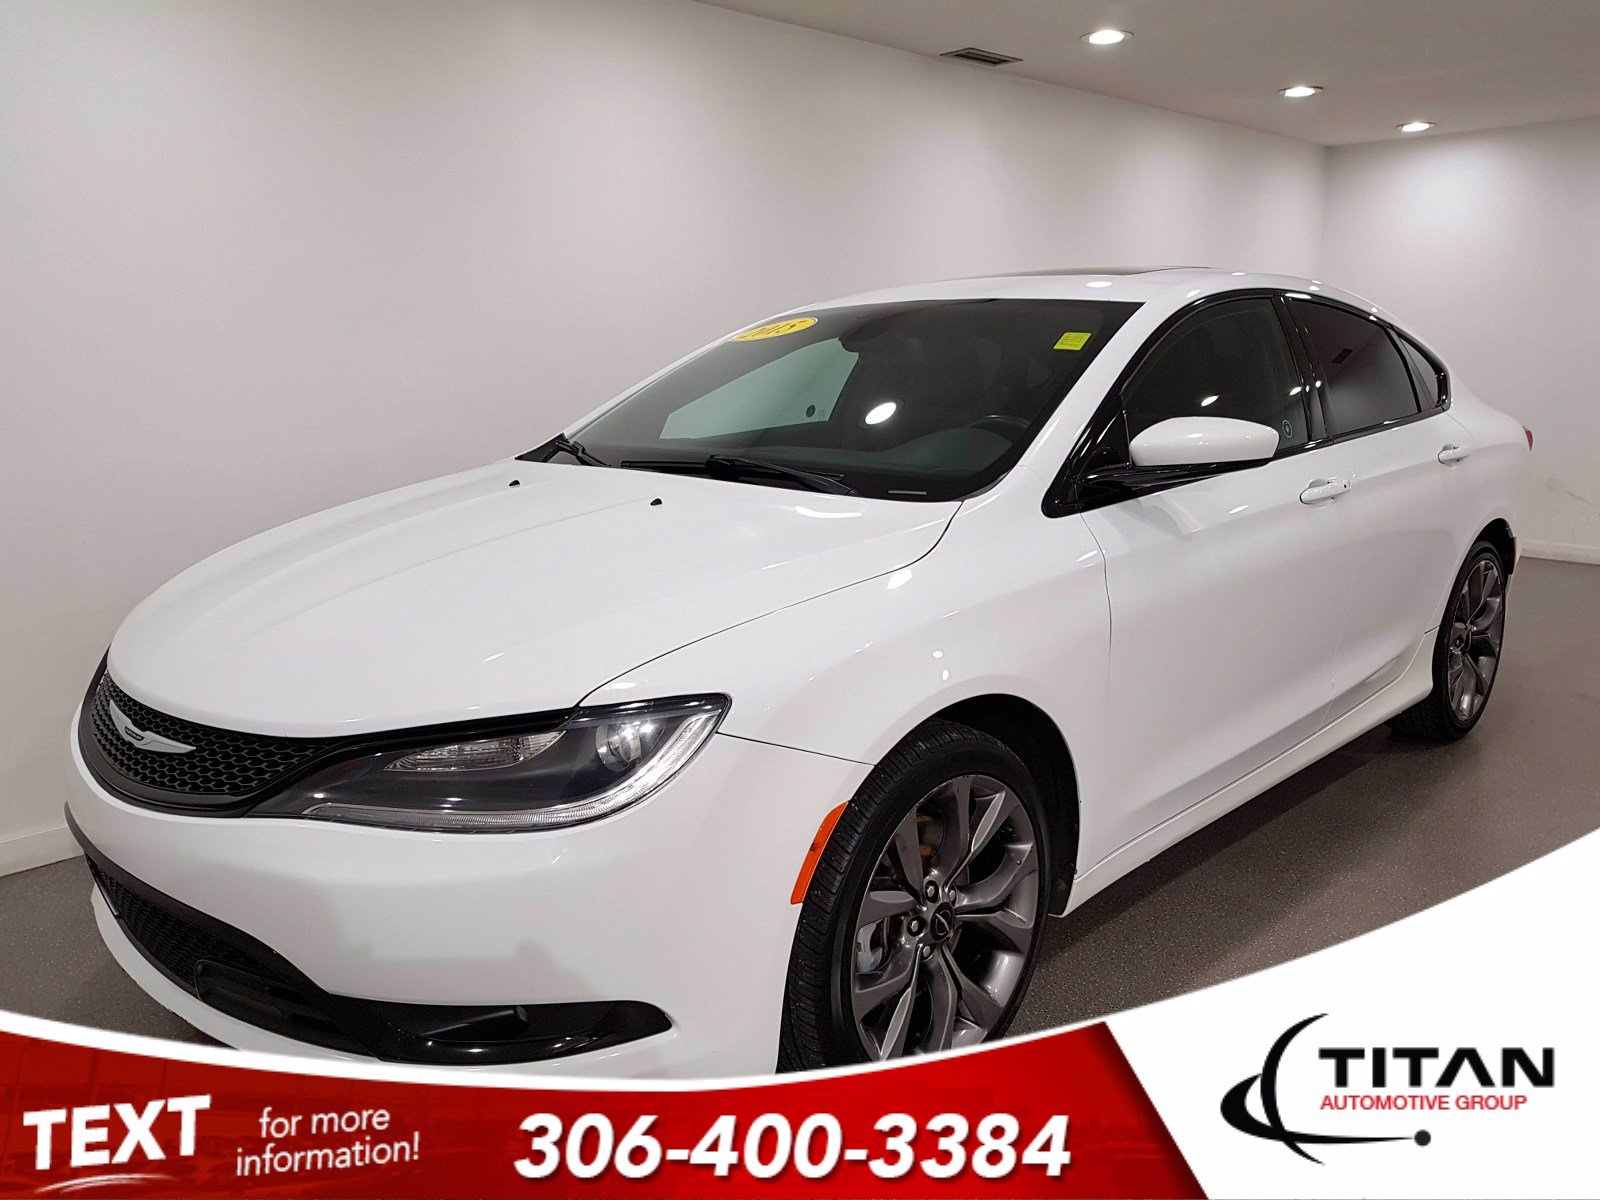 Pre-Owned 2015 Chrysler 200 S 3.6L V6 | Sport Leather | Pano Sunroof | Alpine | Navigation | Remote Start | Bluetooth | Rims